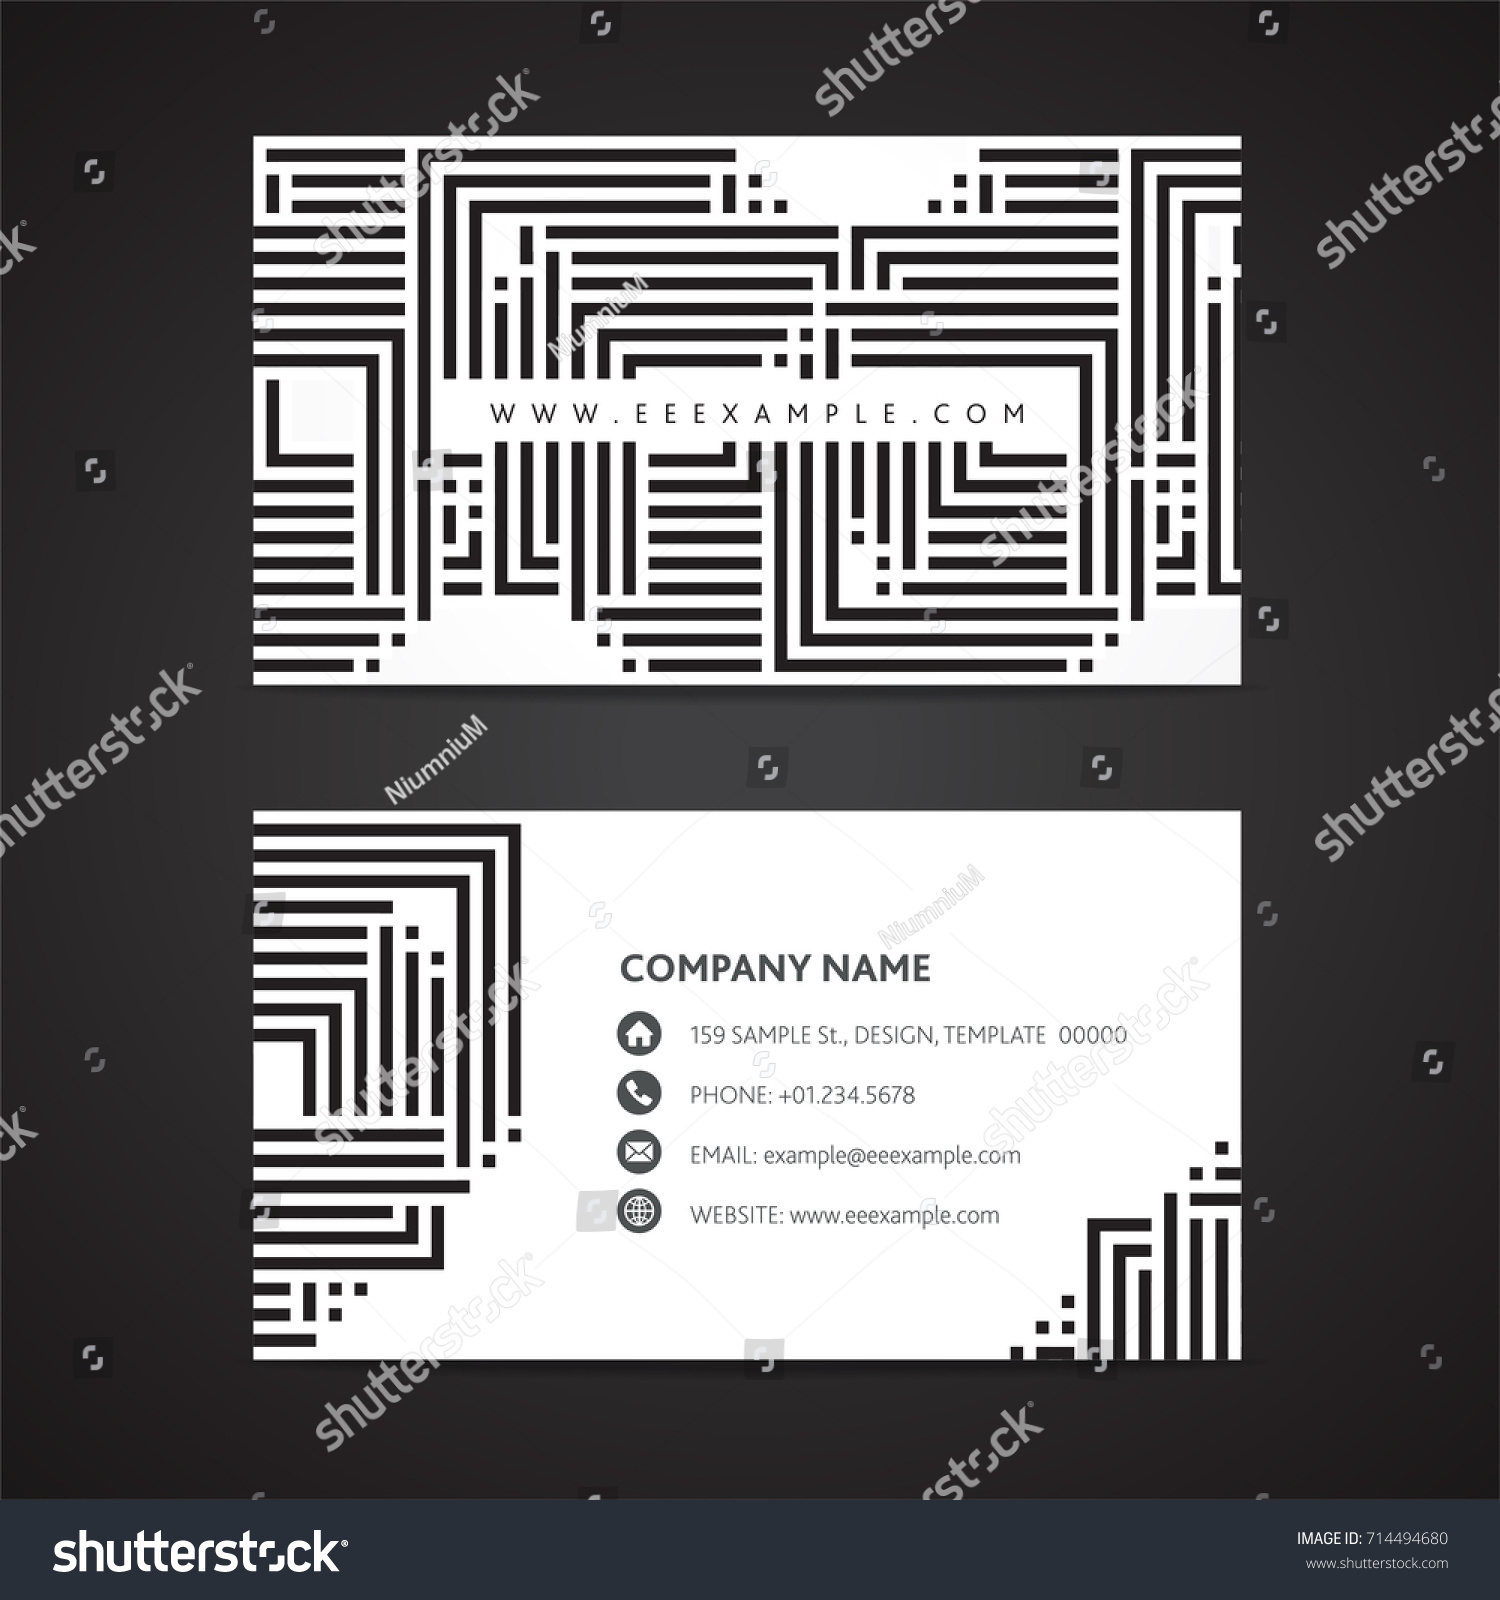 Black White Business Card Template 2 Stock Vector 714494680 ...